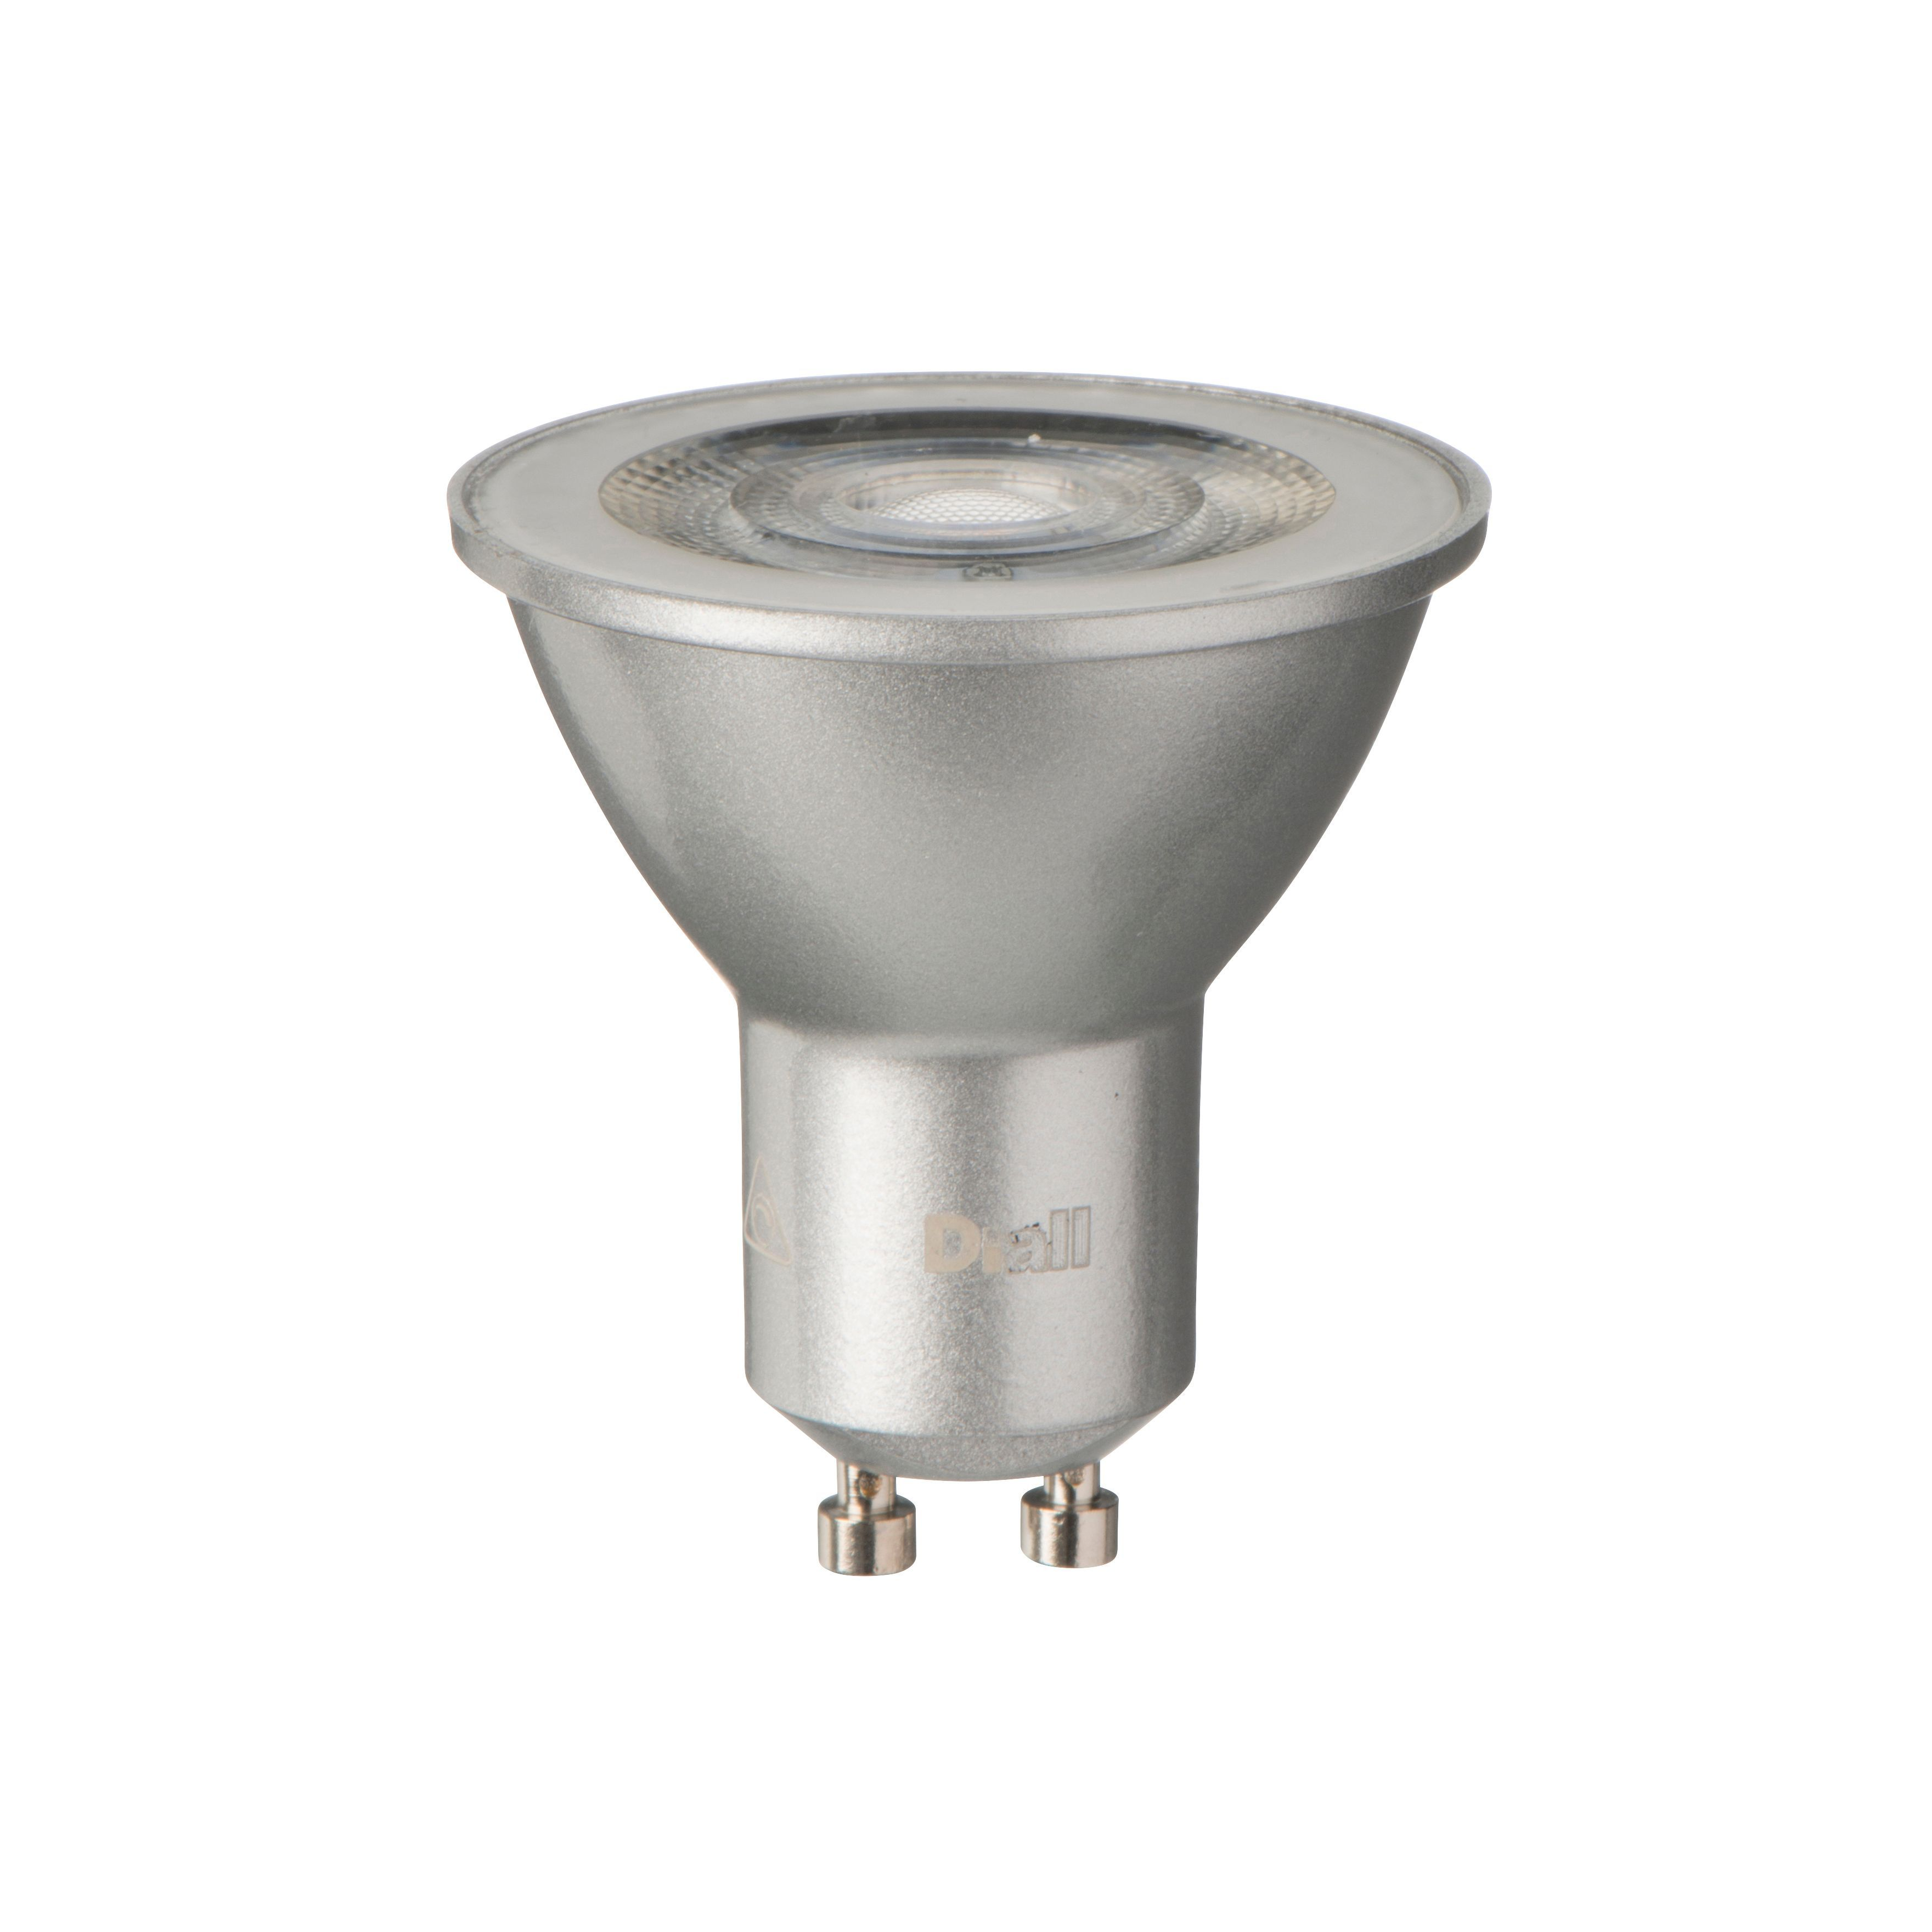 Diall Gu10 345lm Led Dimmable Reflector Light Bulb